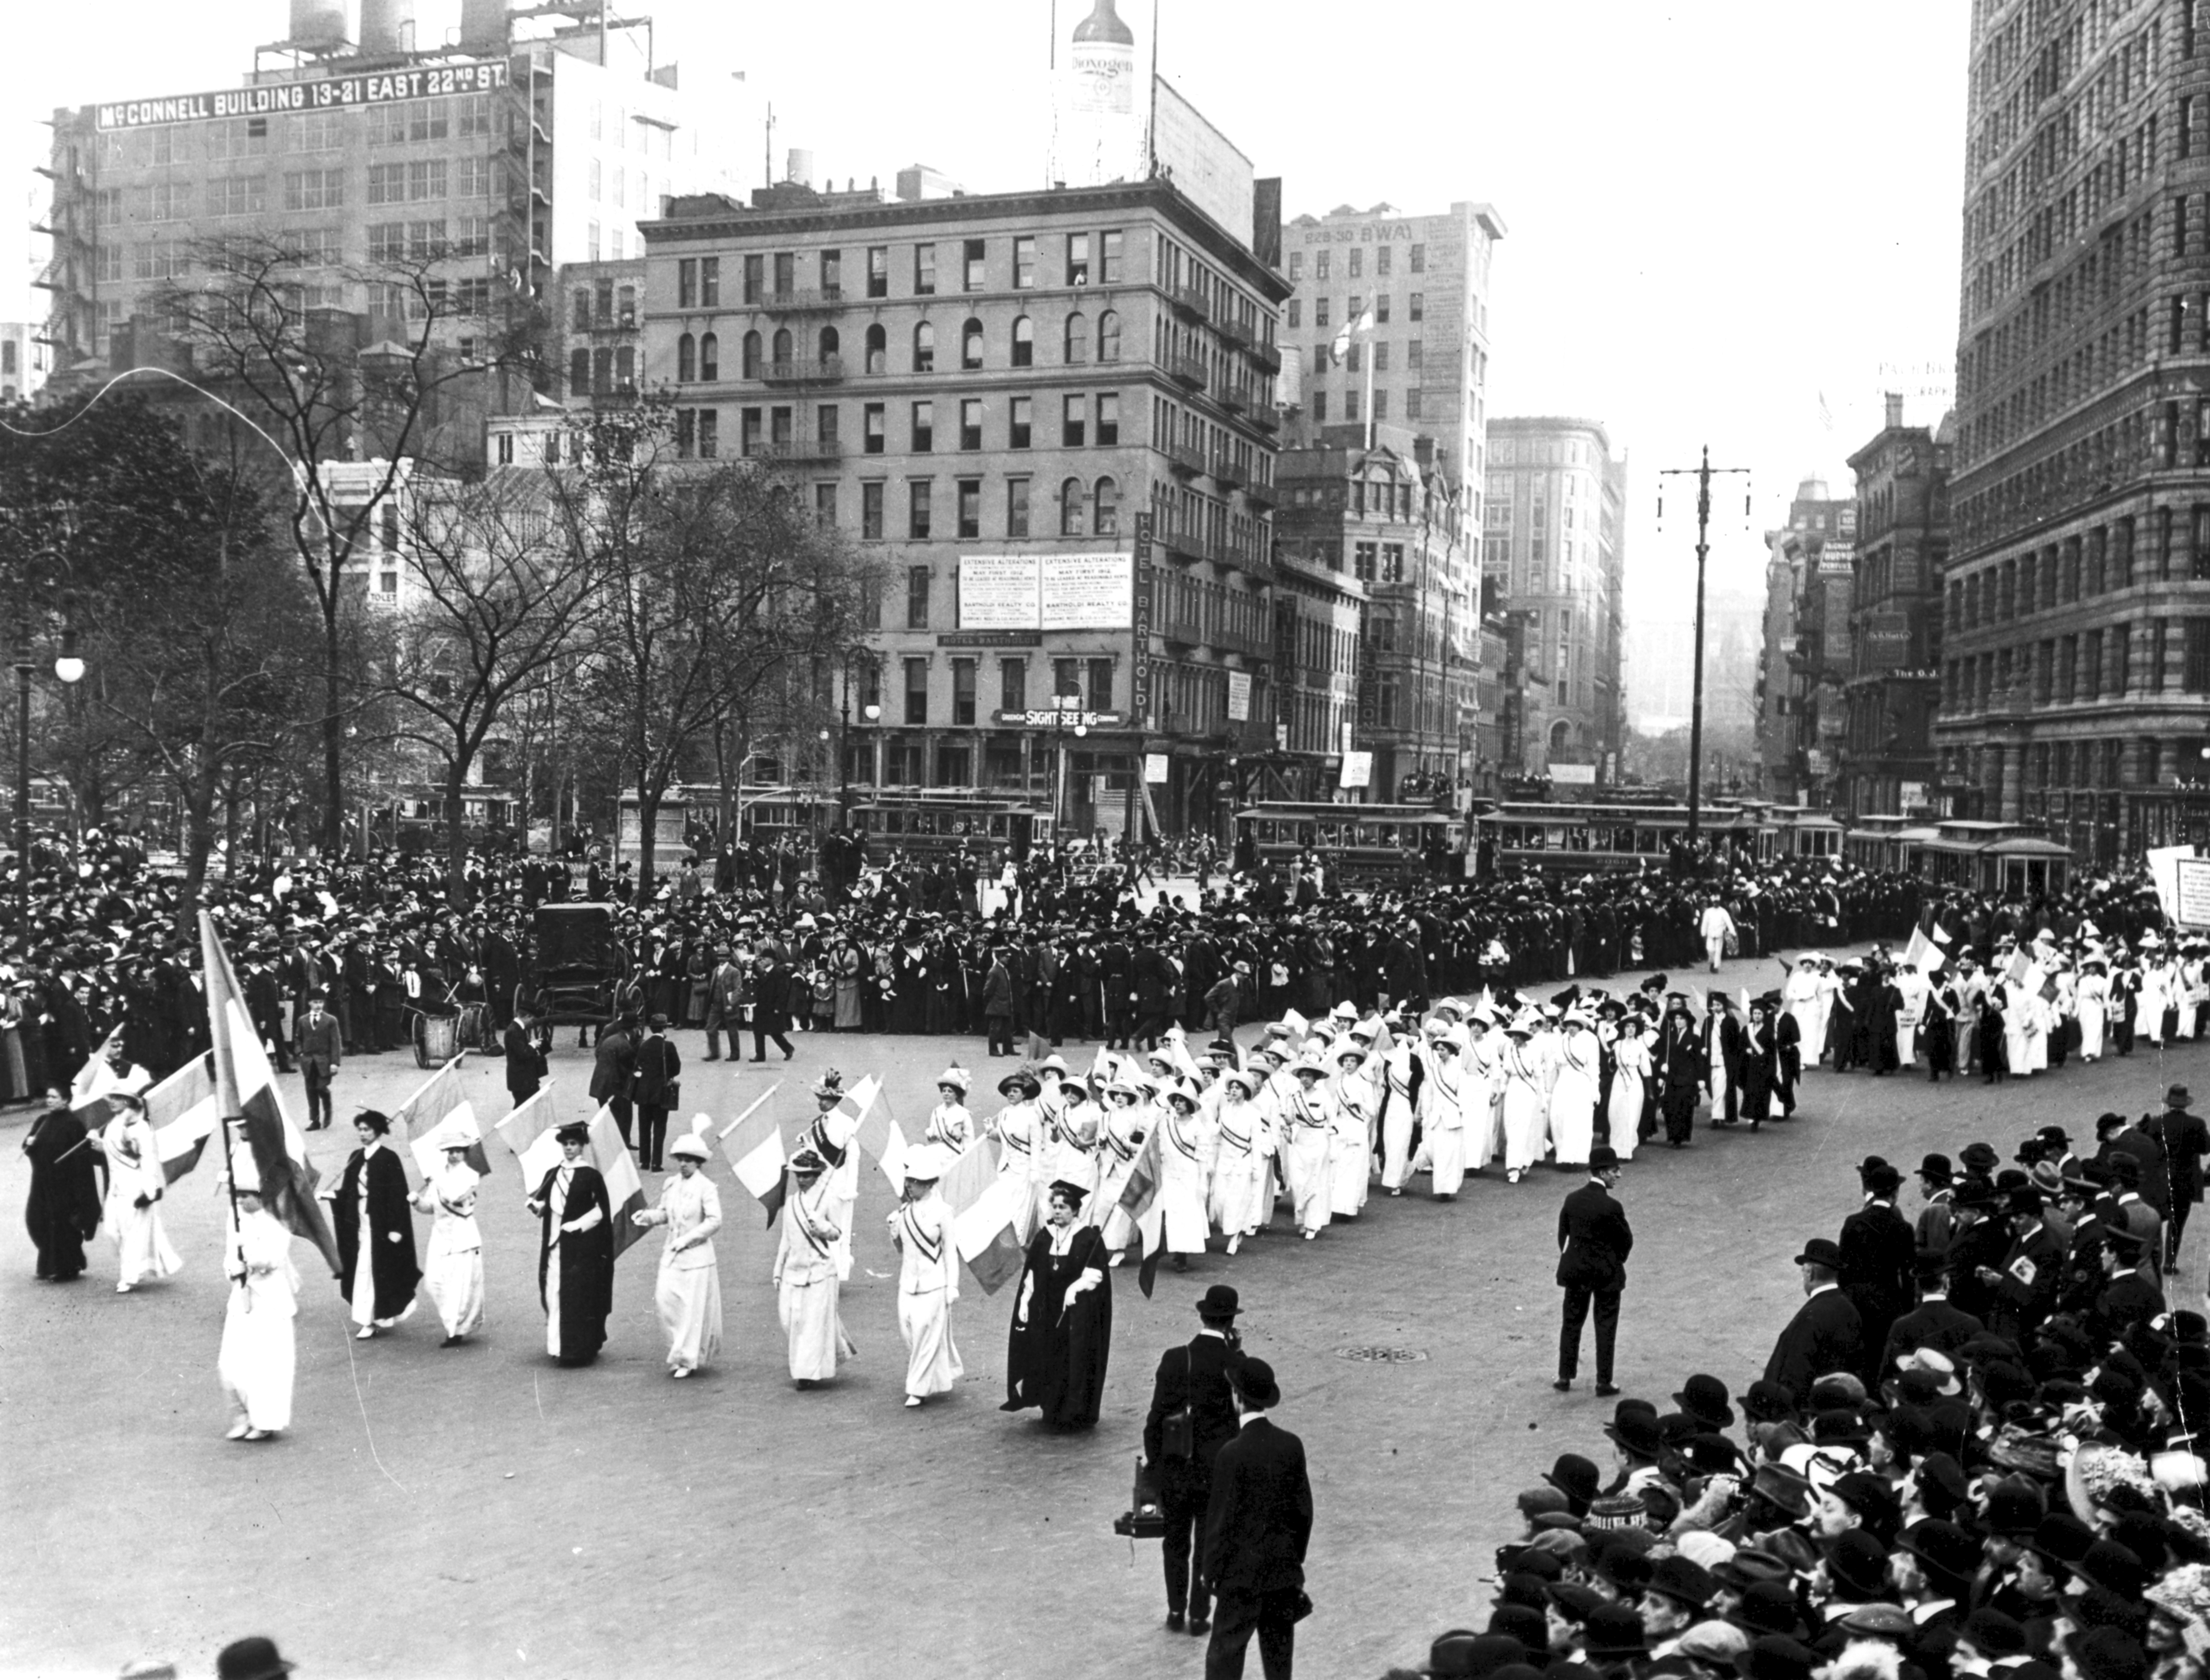 View of a suffrage march on Fifth Avenue, off Broadway and 23rd street, in New York City, 1912.